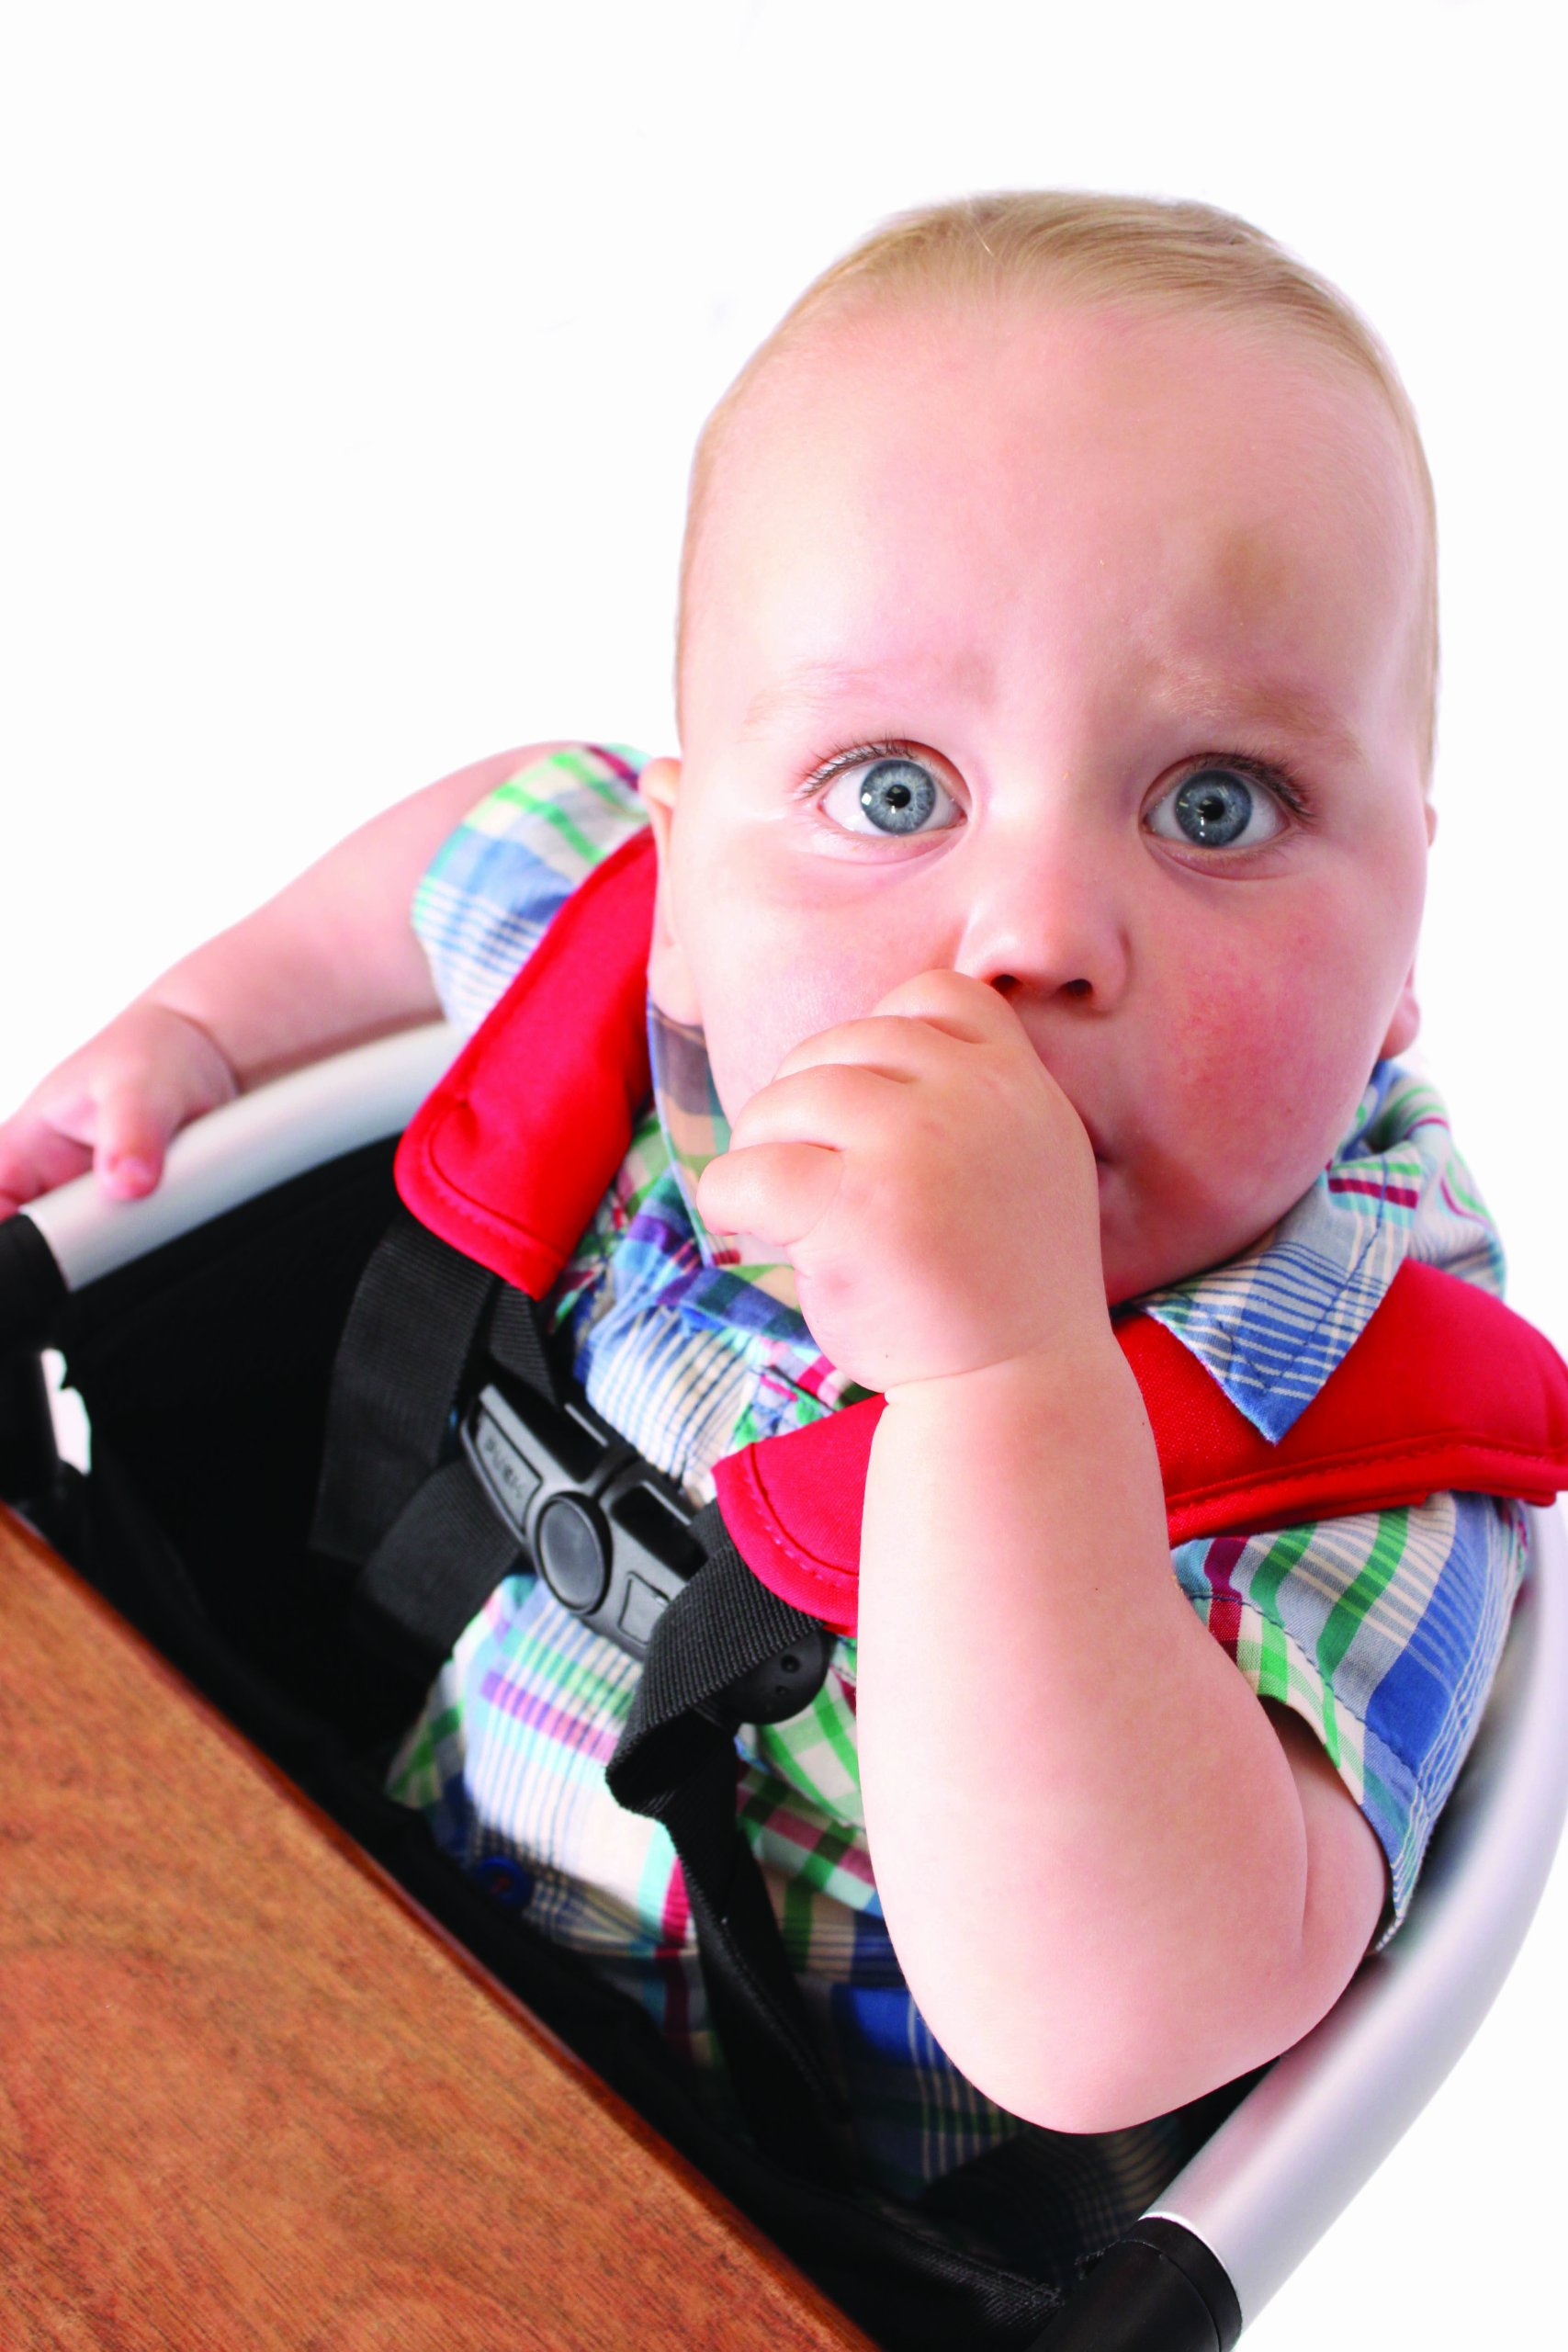 phil&teds Lobster Clip-On Highchair, Black - Award Winning Portable High Chair - Includes Carry Bag and Dishwasher Safe Tray - Hygienic and Easy Clean - Safe and Secure - Ideal For Home and Travel by phil&teds (Image #7)